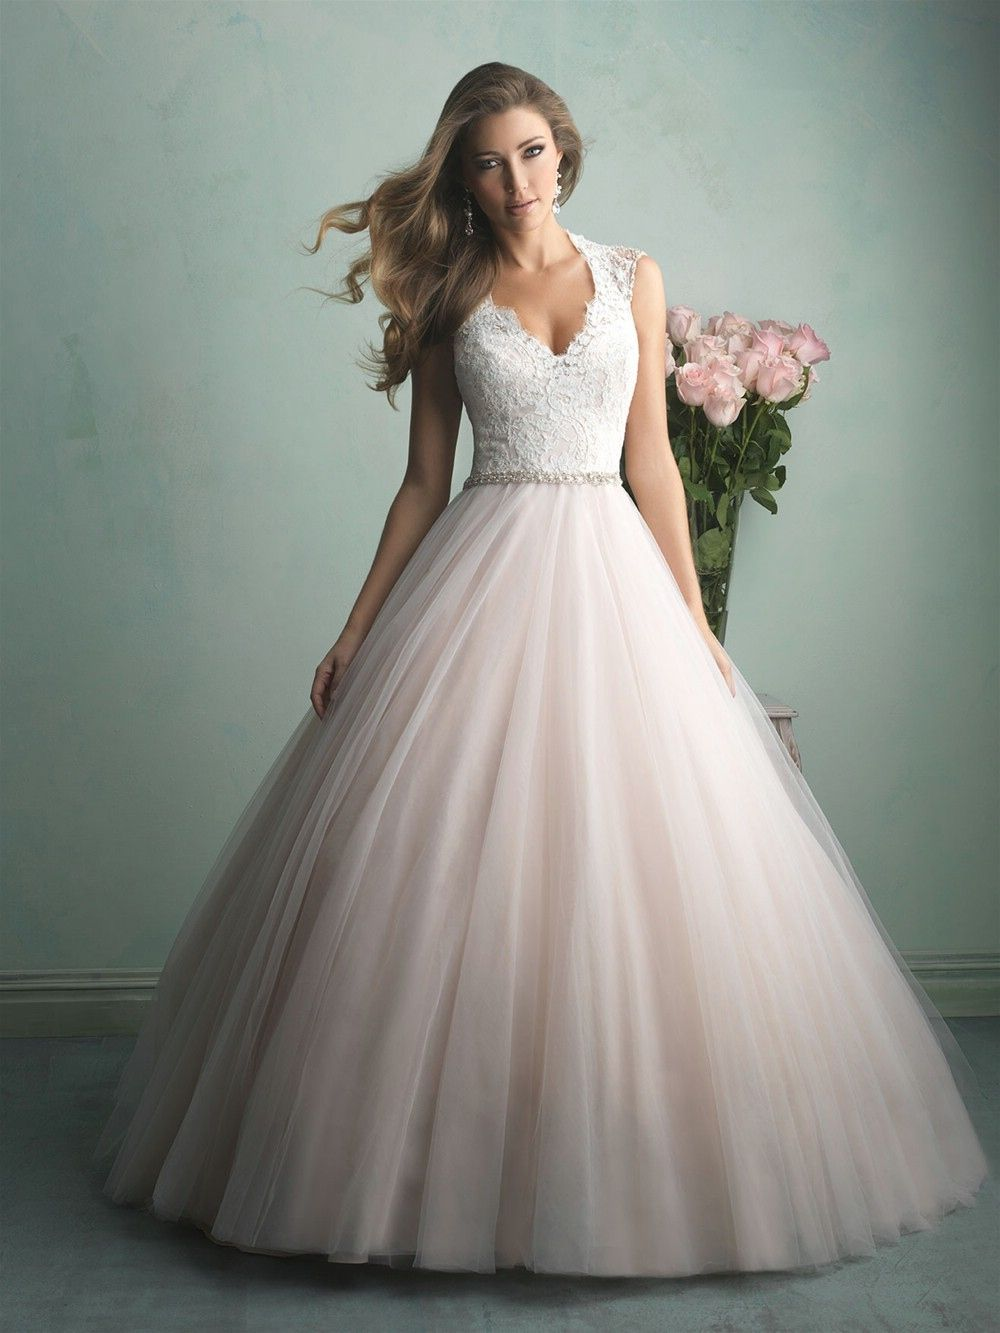 Beautiful Wedding Dresses With Prices Check More At Httpsvesty